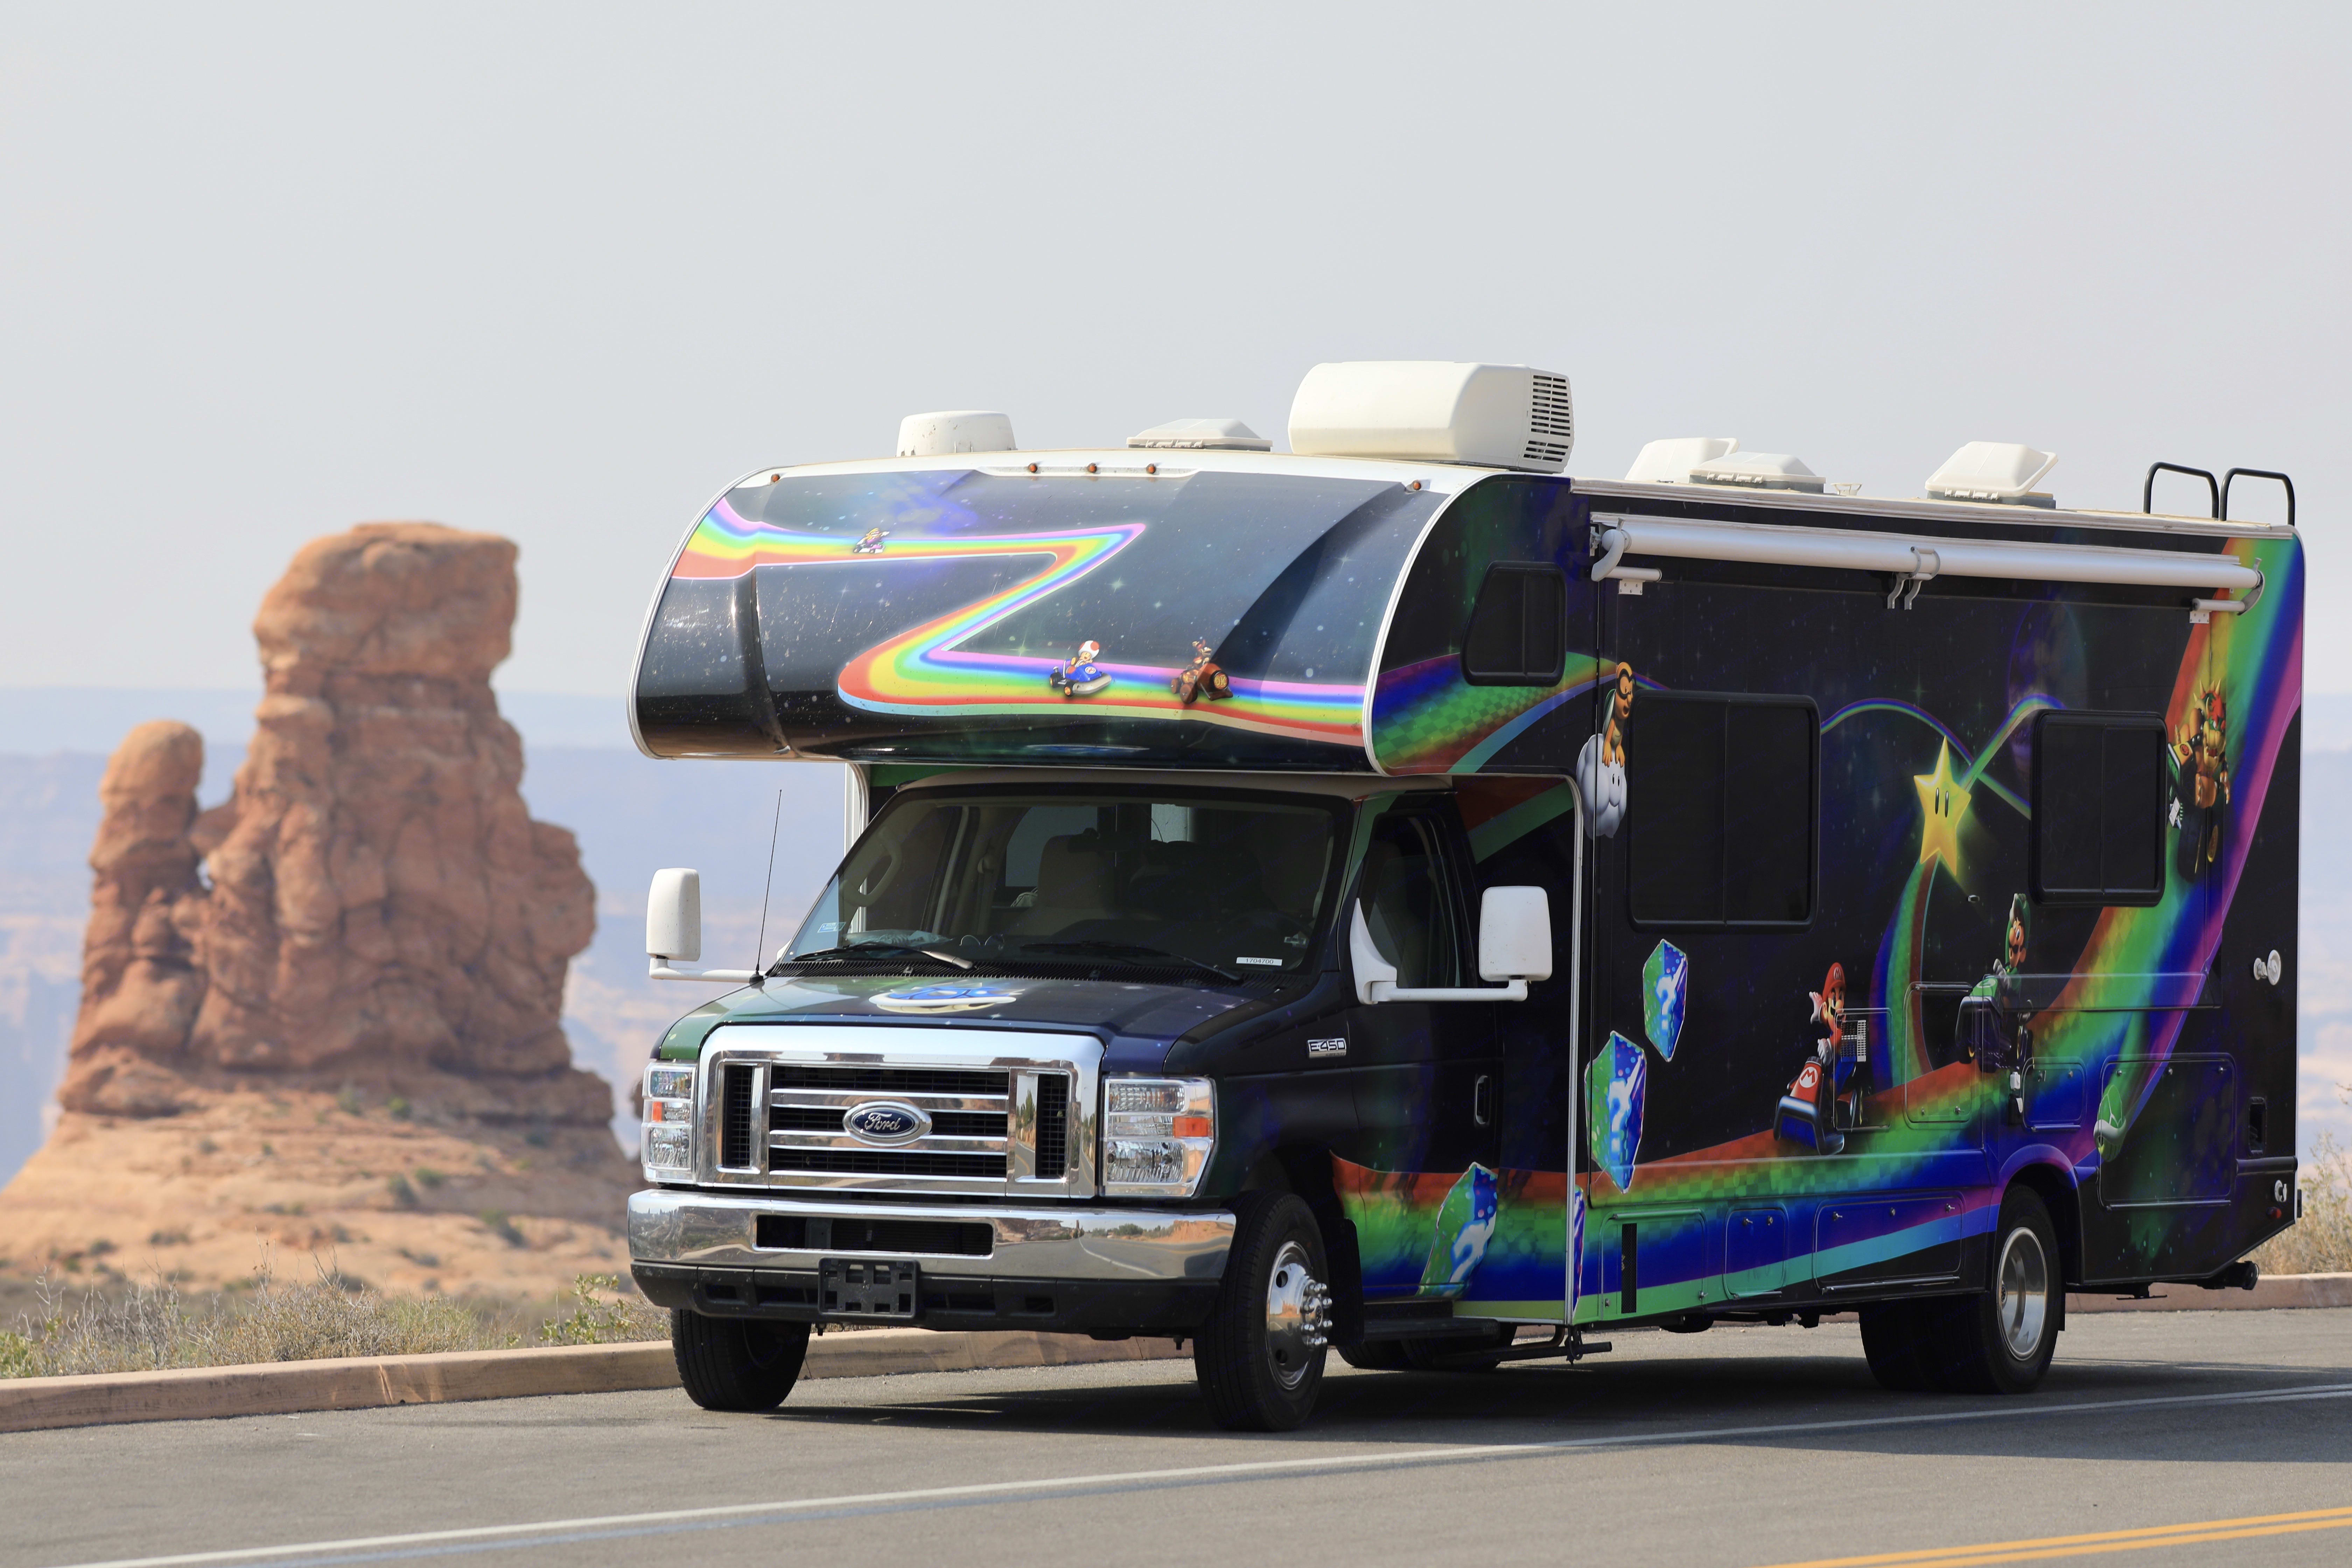 And best of all, folks LOVE the joy the wrap brings. Why not bring a smile to folks' faces, especially your children's. :-). Thor Motor Coach Daybreak 2020